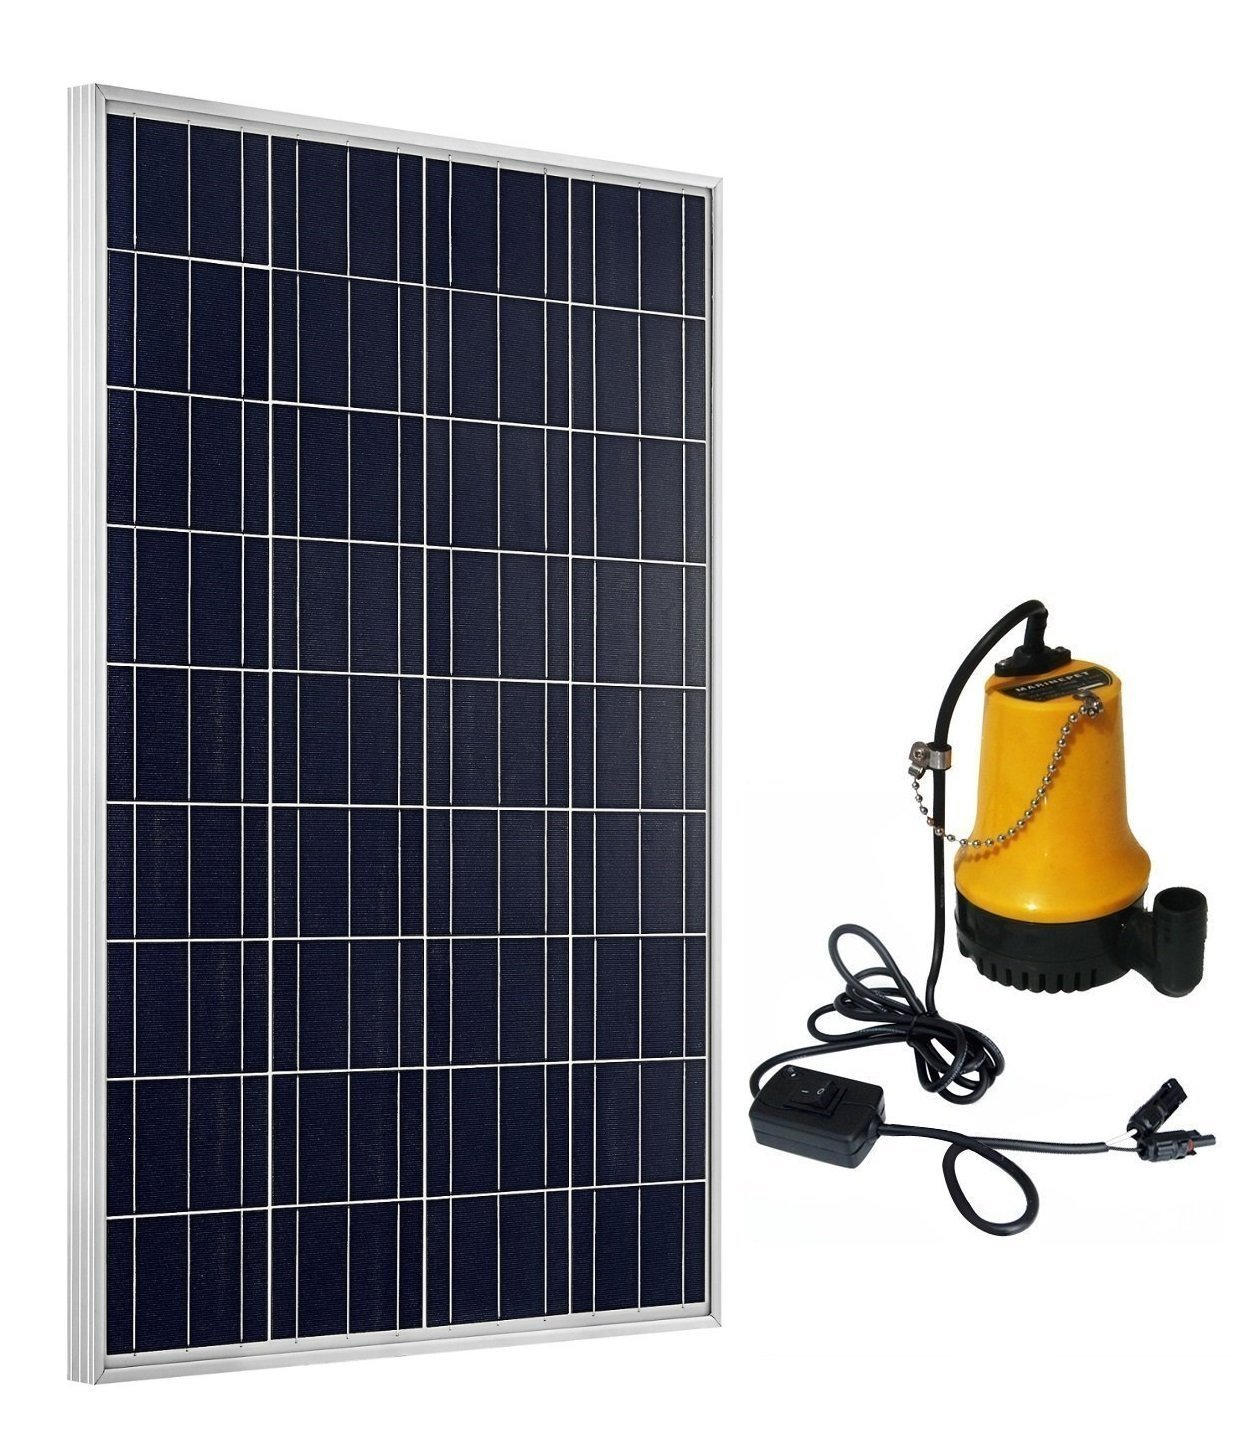 ECO-WORTHY Solar Powered Pump Kit: 100W Solar Panel with Water Pump for Garden Pond Fountain Pool 3 years guarantee solar wells pumps made in china solar pool pump kit